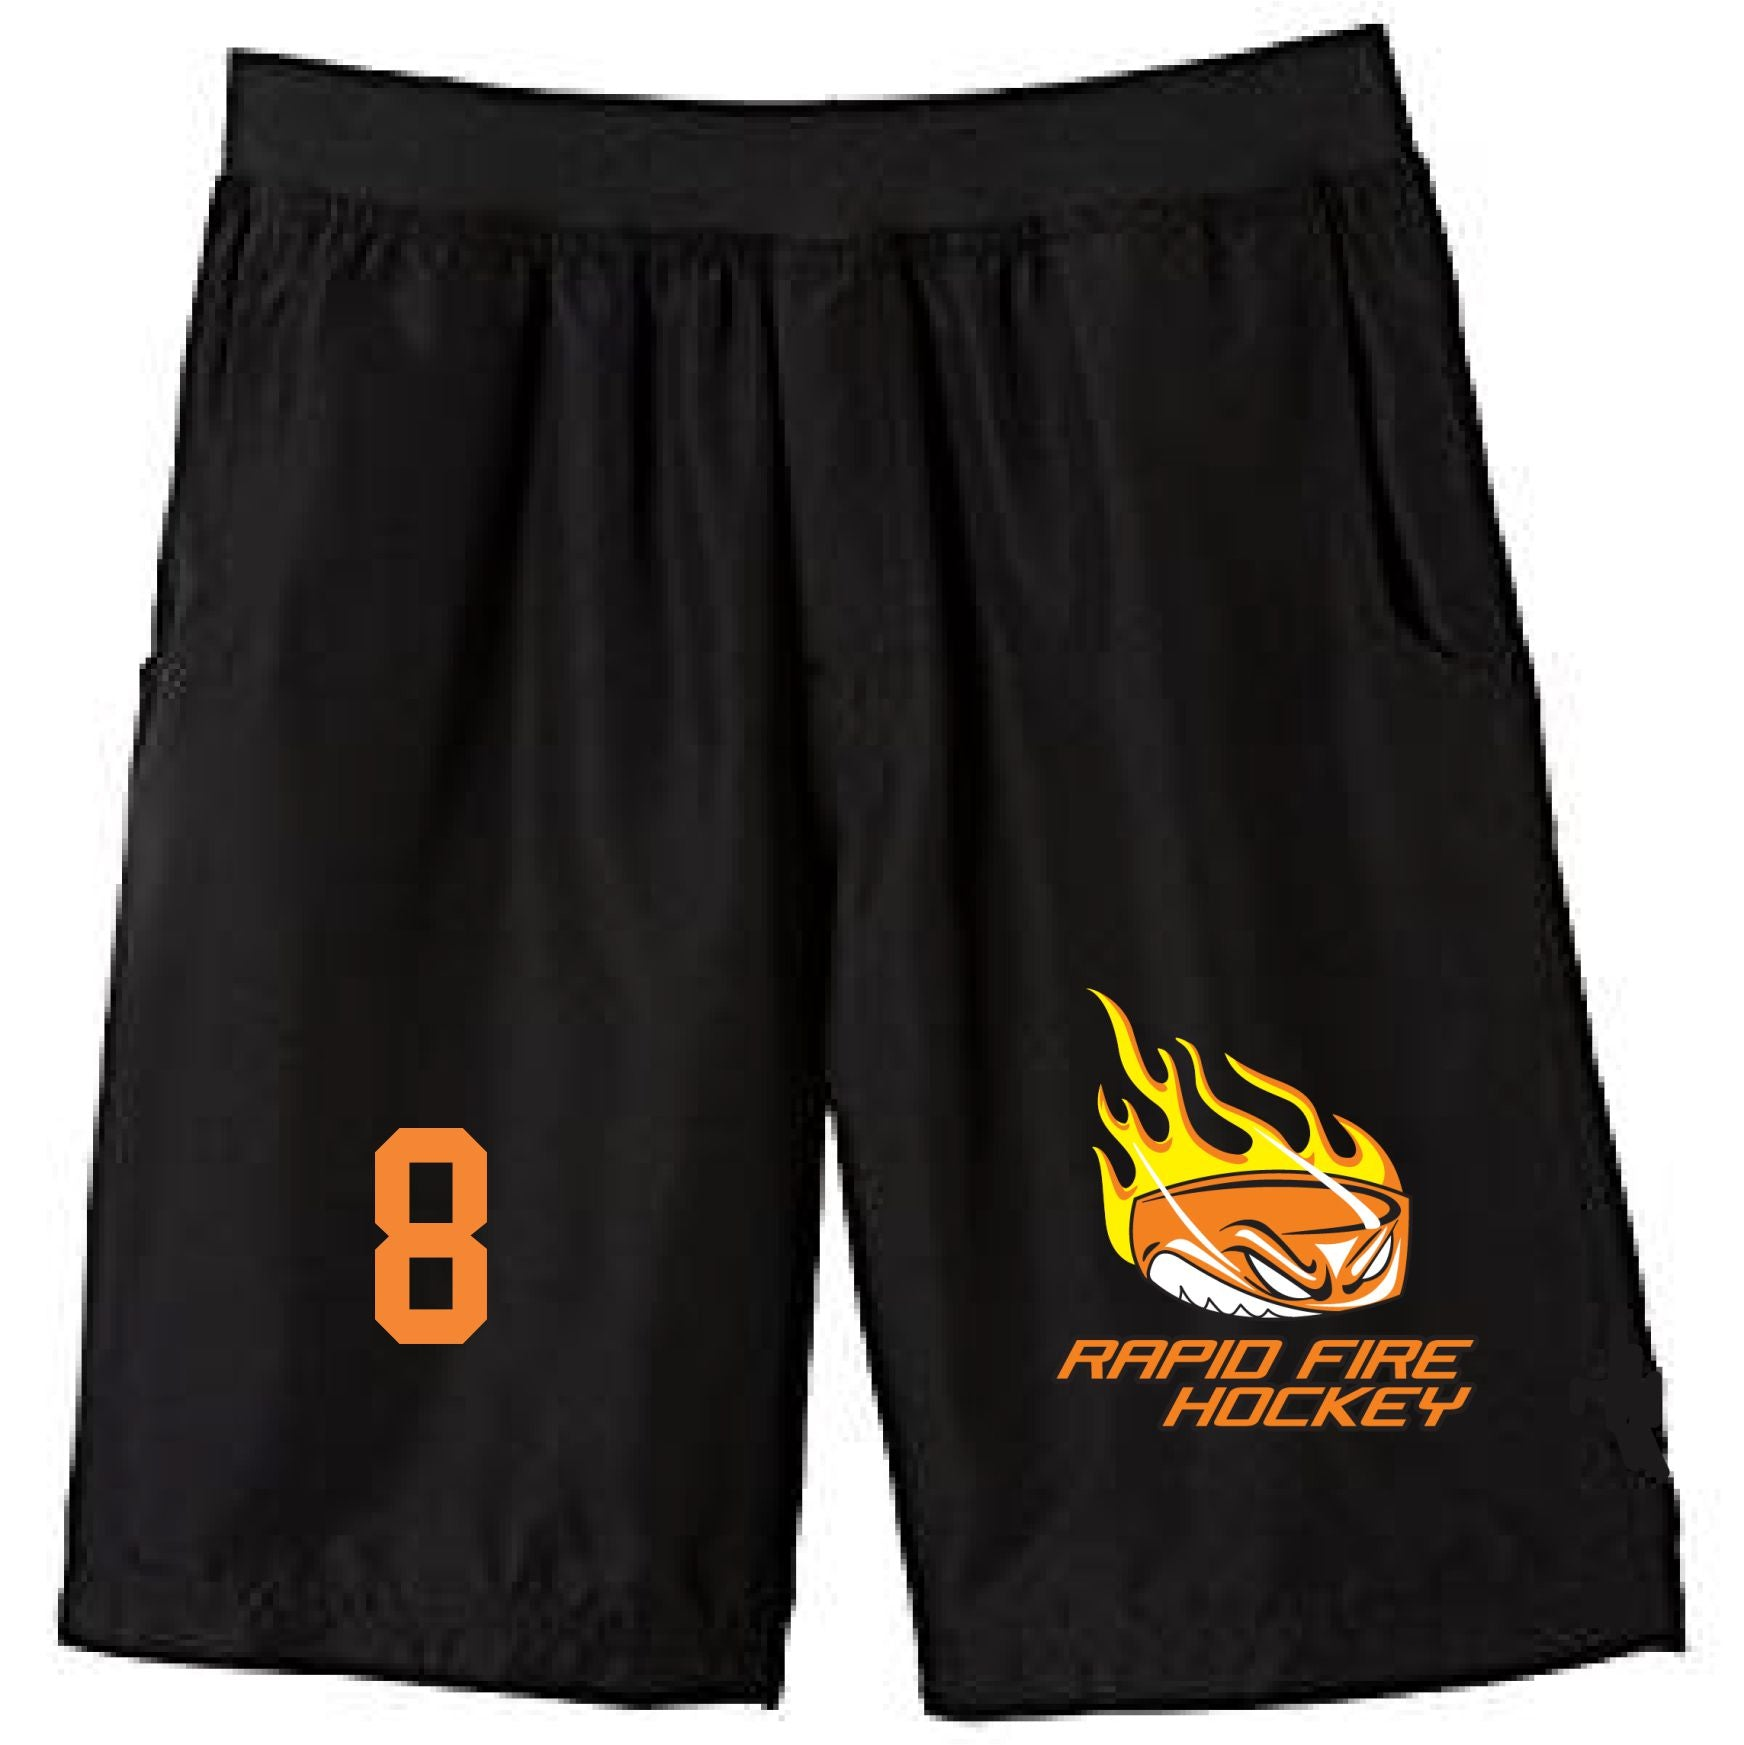 F) ADULT AND YOUTH 100% POLY SHORTS